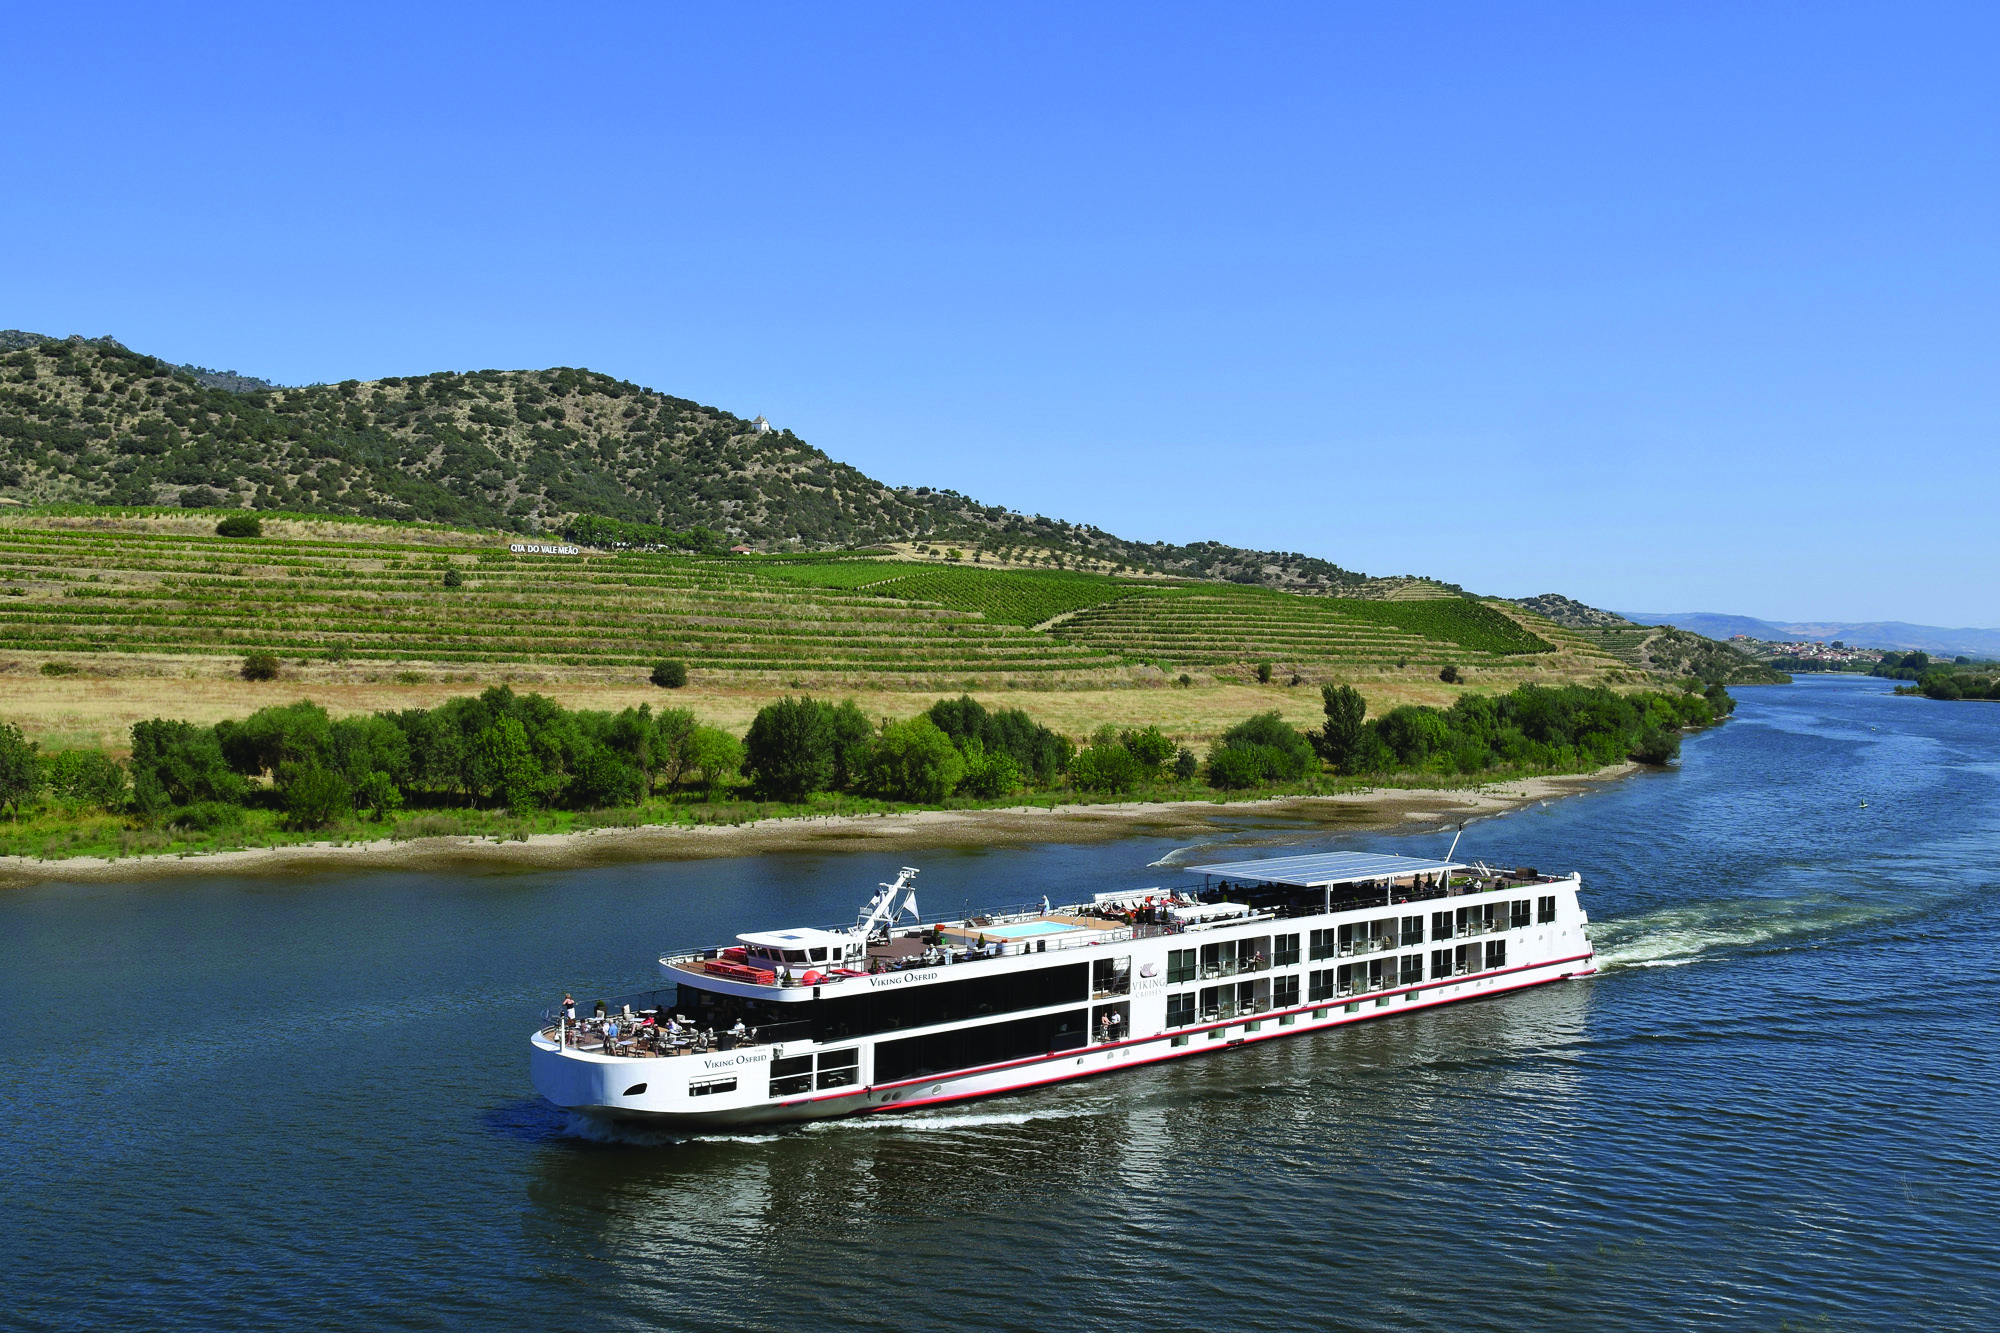 douro azul, floating hotel